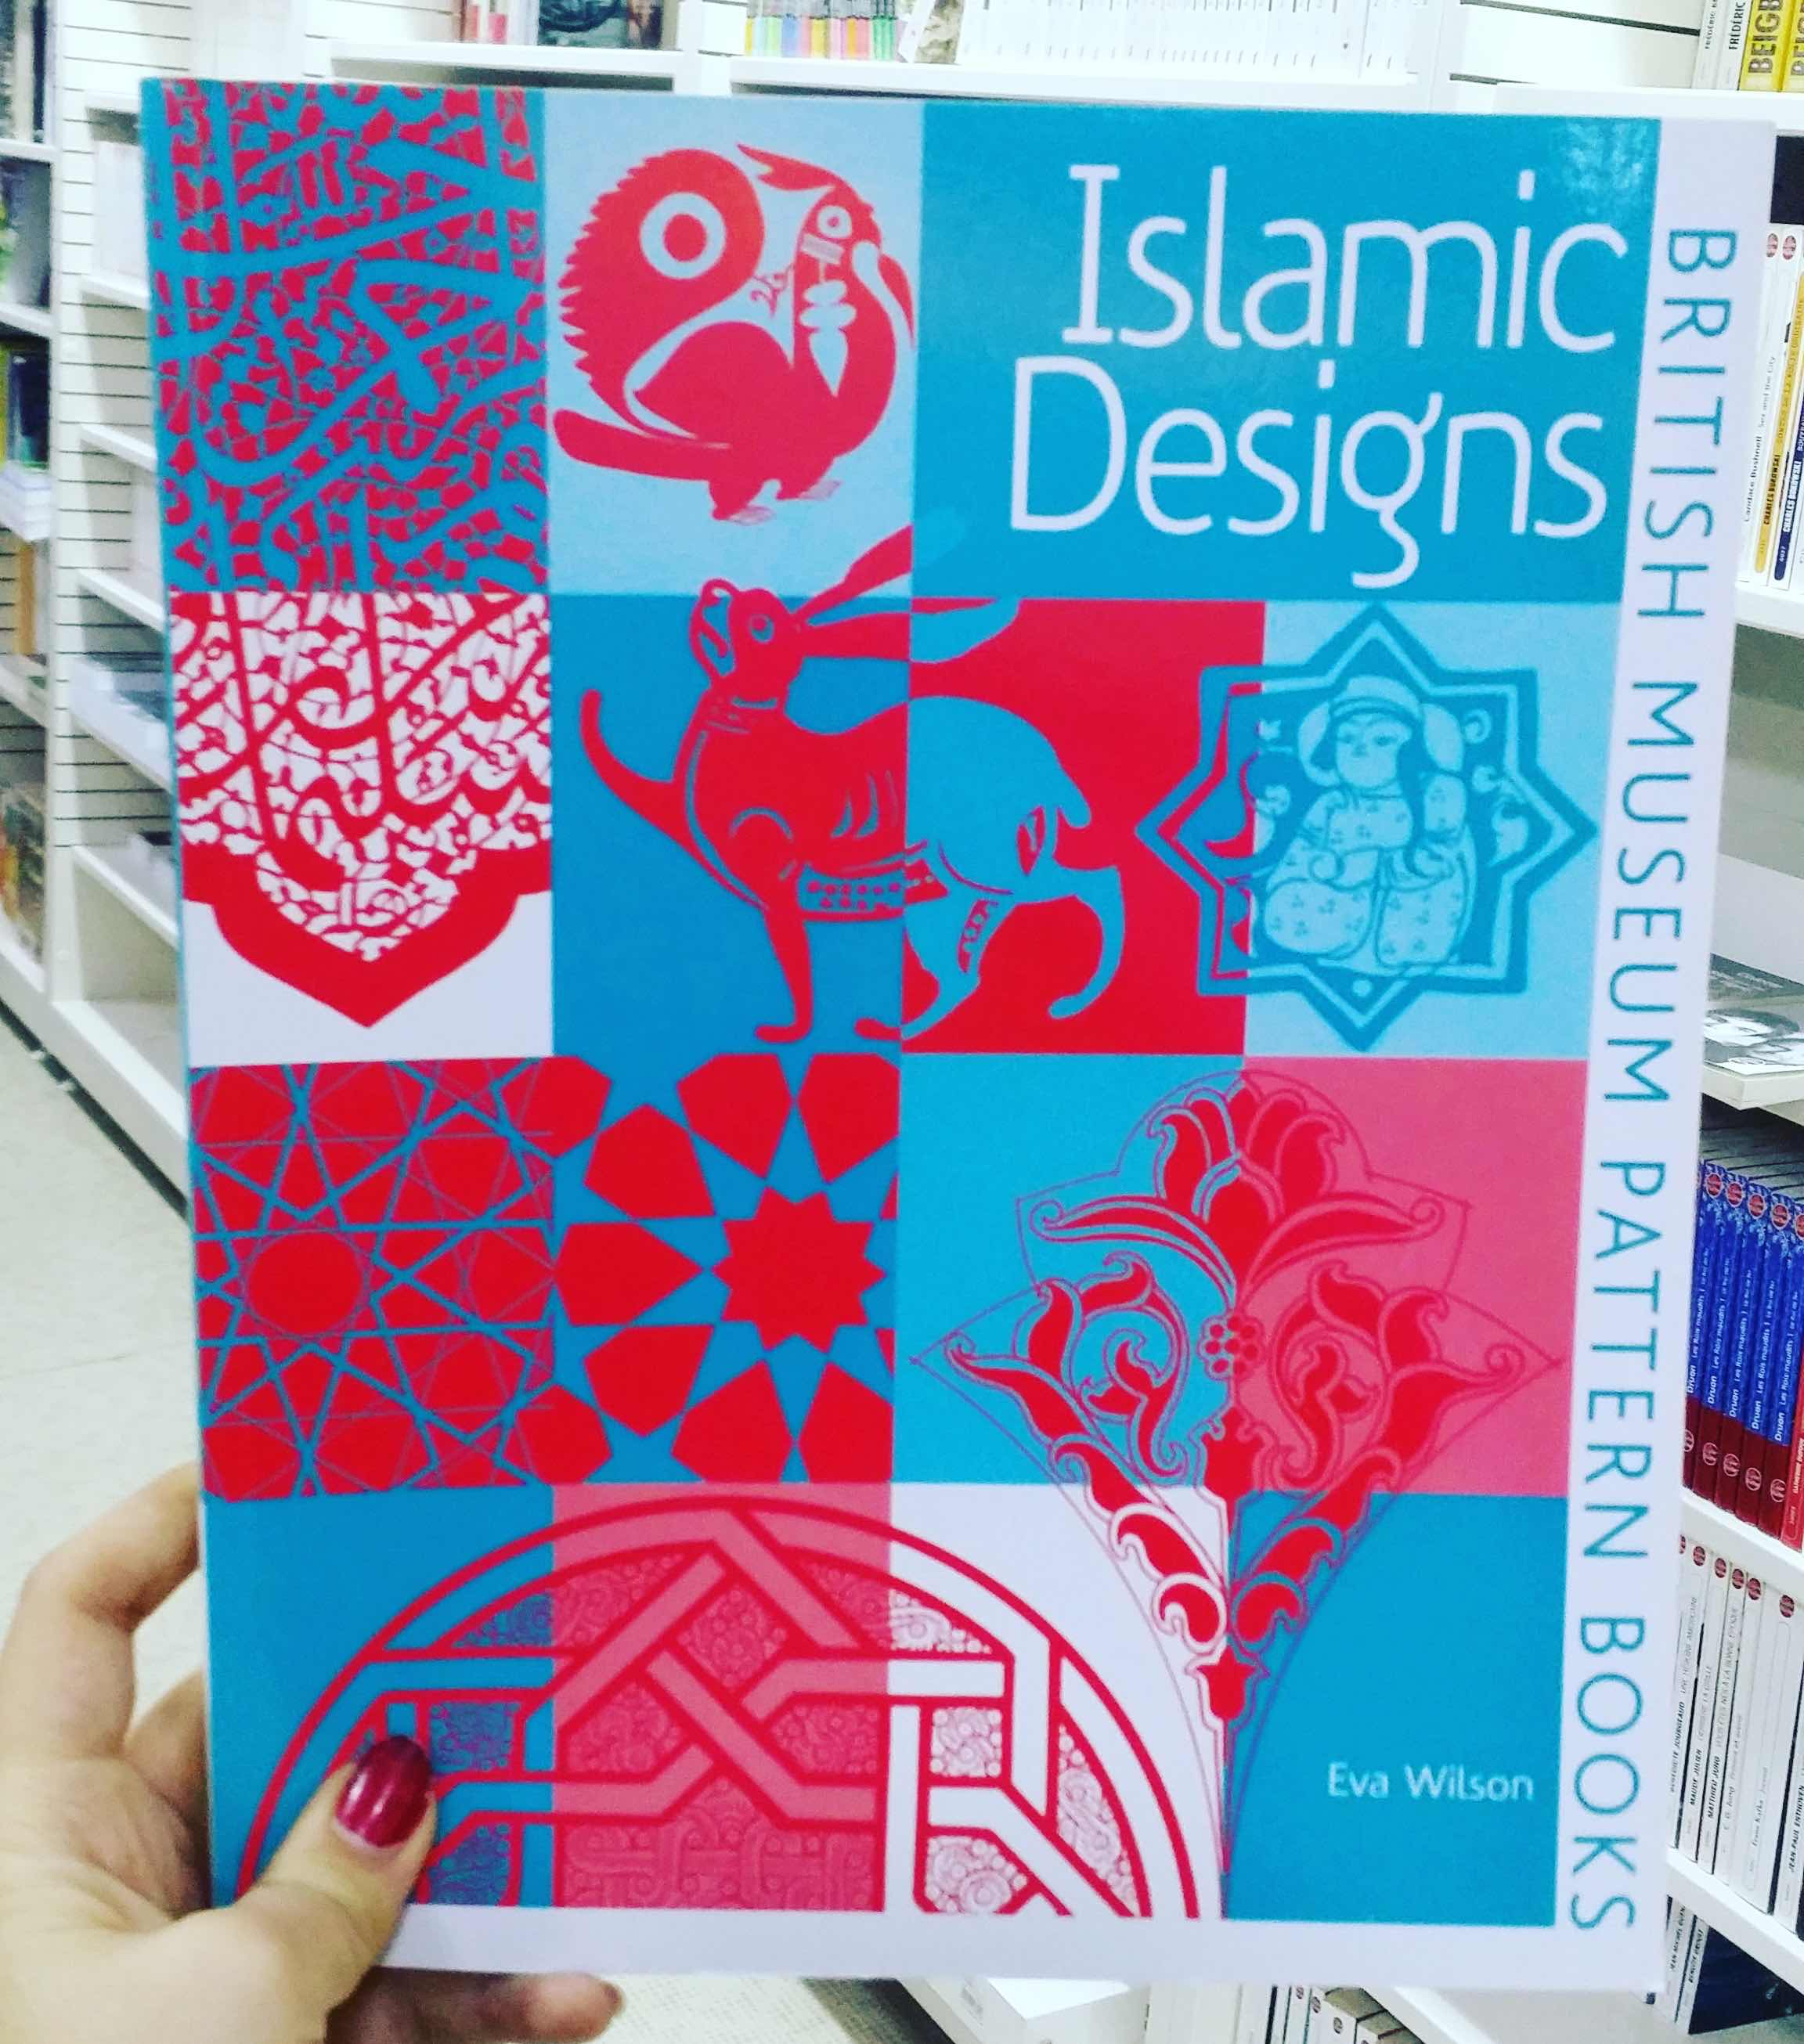 British Museum Pattern Books: Islamic Designs